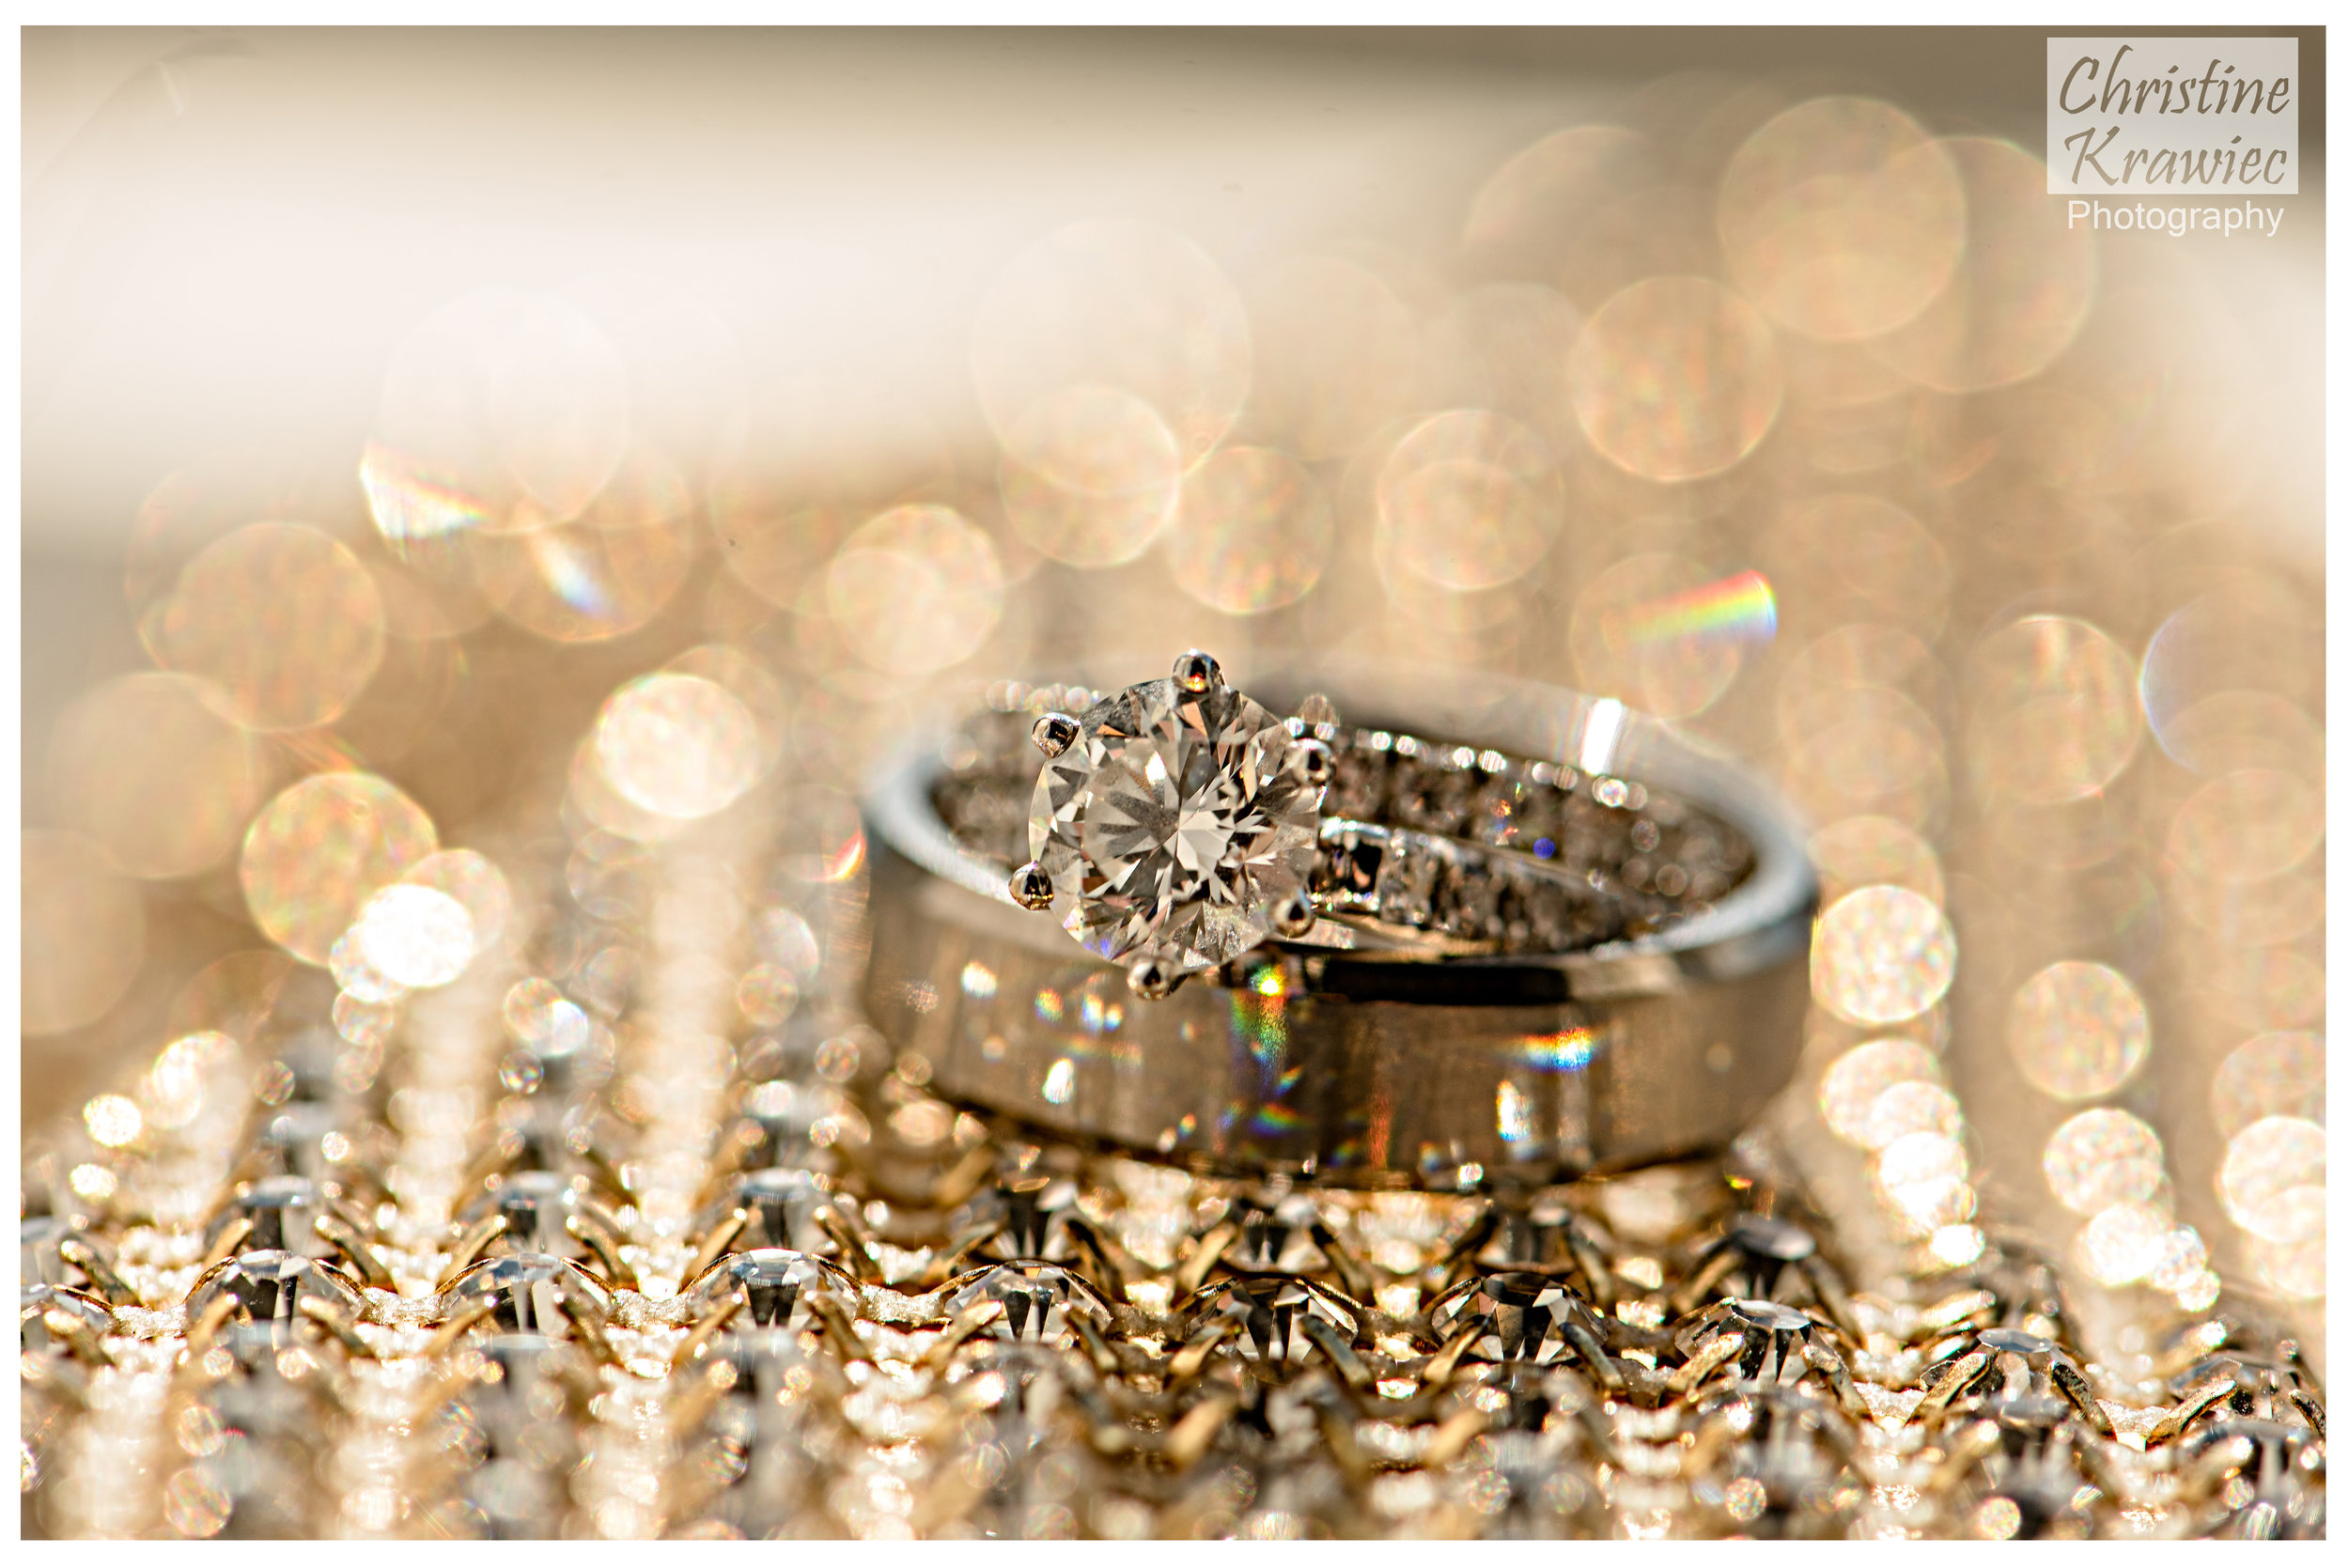 The wedding rings glistened against the backdrop of the bride's gold handbag